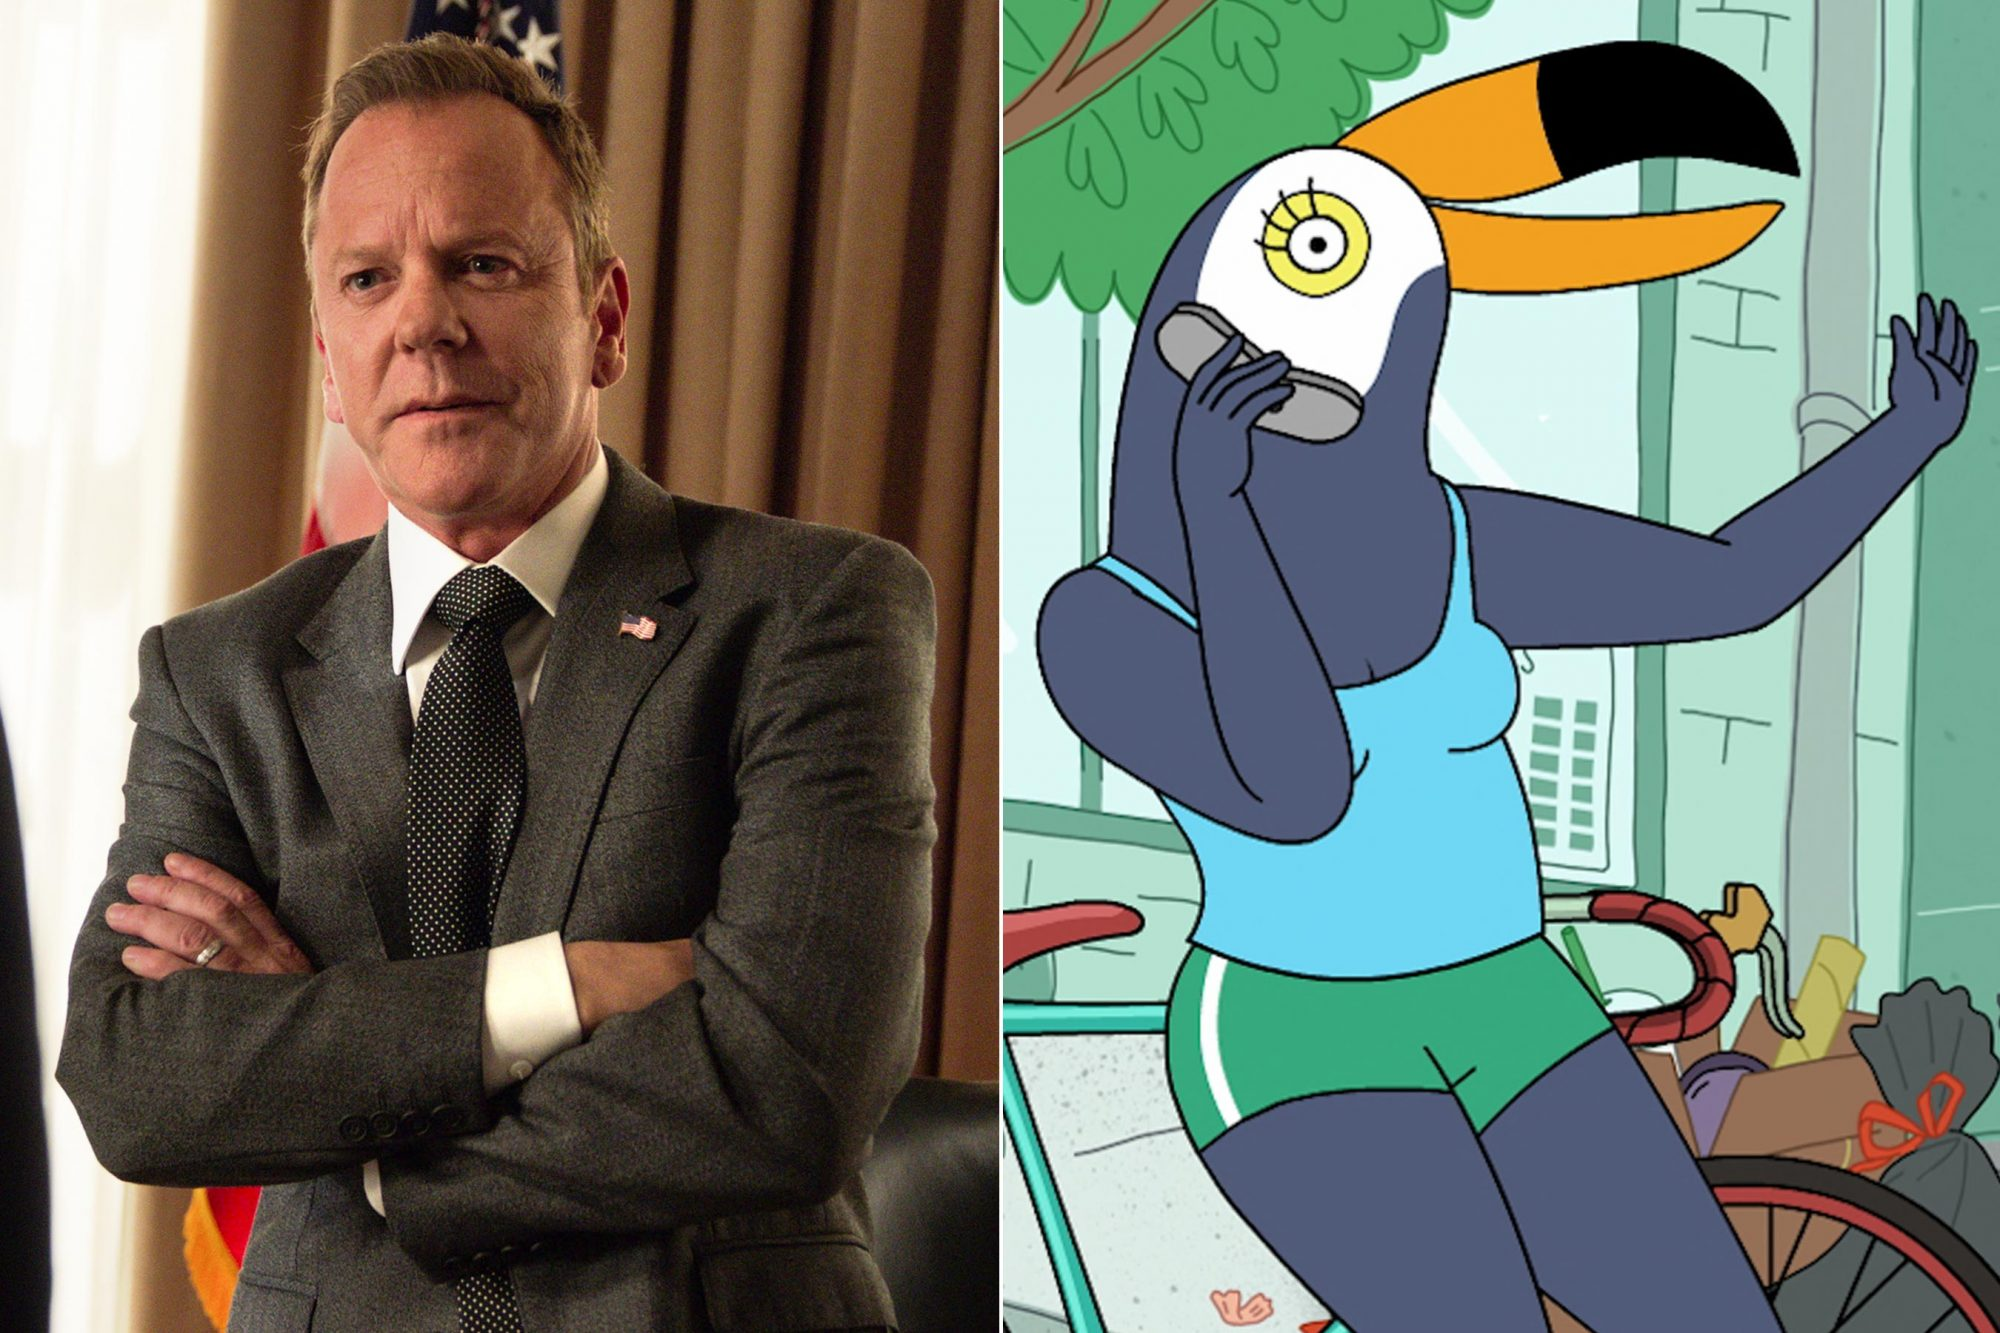 DESIGNATED SURVIVOR Season 3 Kiefer Sutherland CR: Netflix Tuca & Bertie CR: Netflix